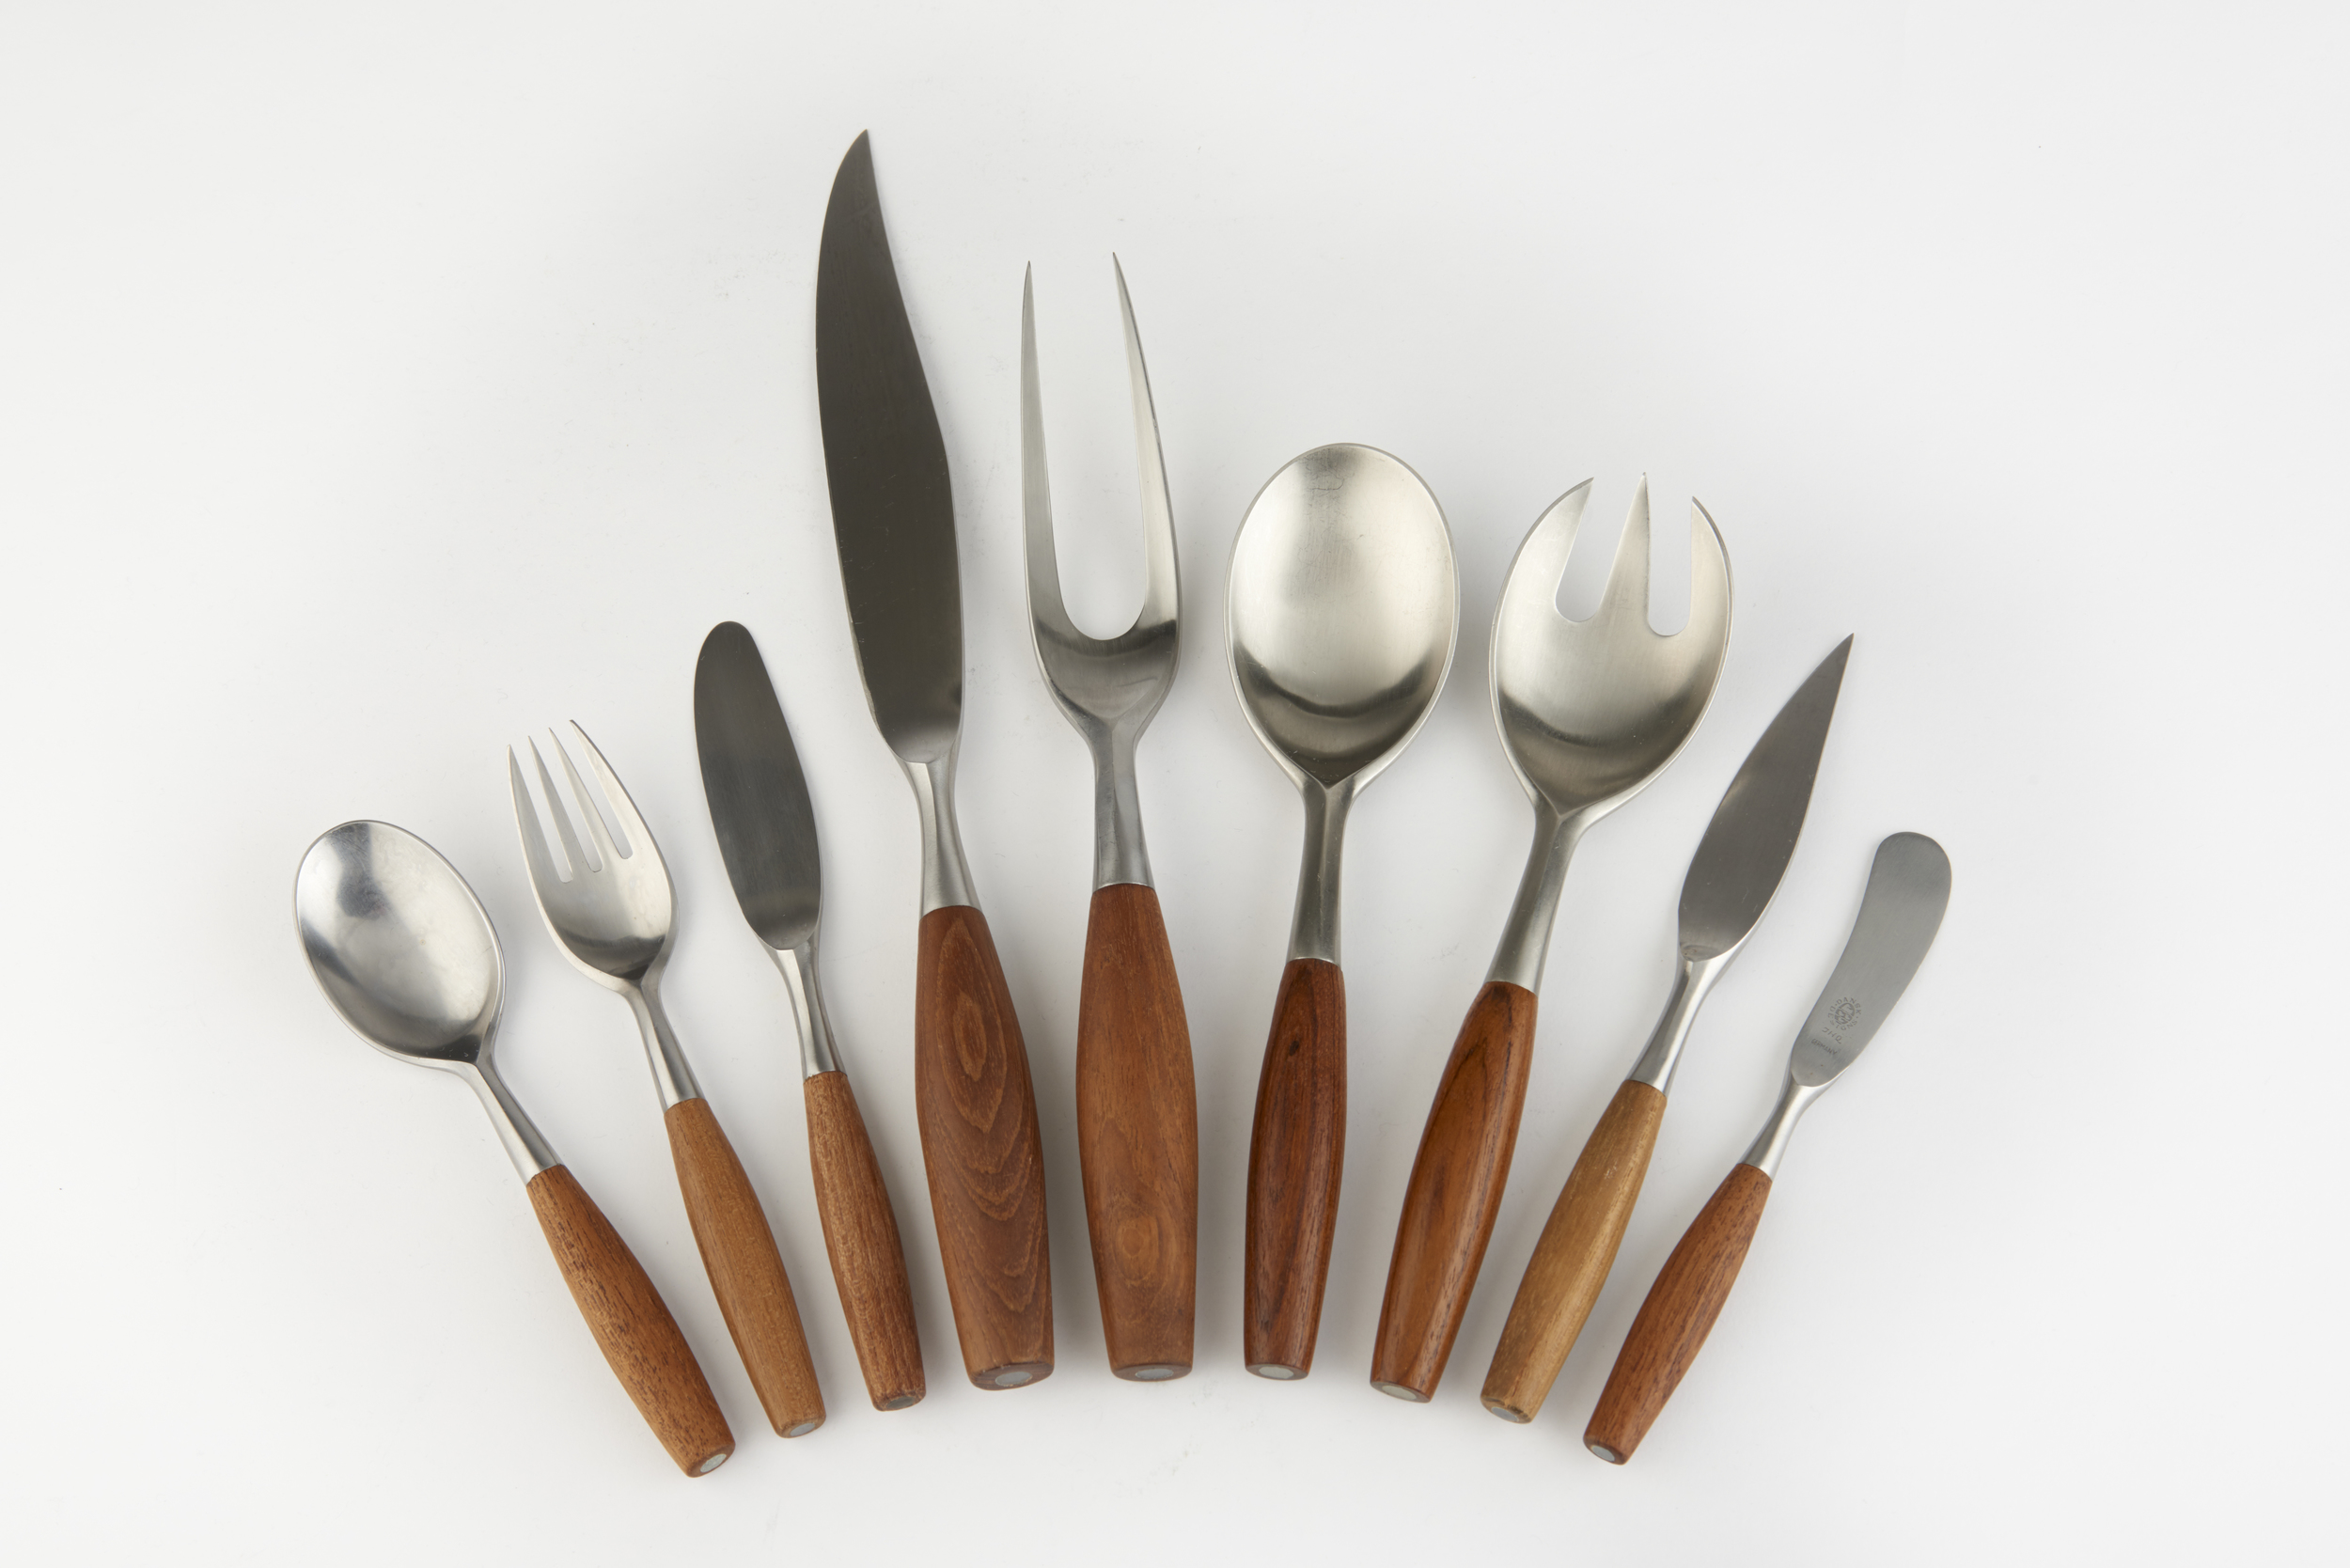 The  Fjord flatware set  by Jens Quistgaard. This pattern was the design that started it all. Photos sourced from the Heart Museum website. (links below)